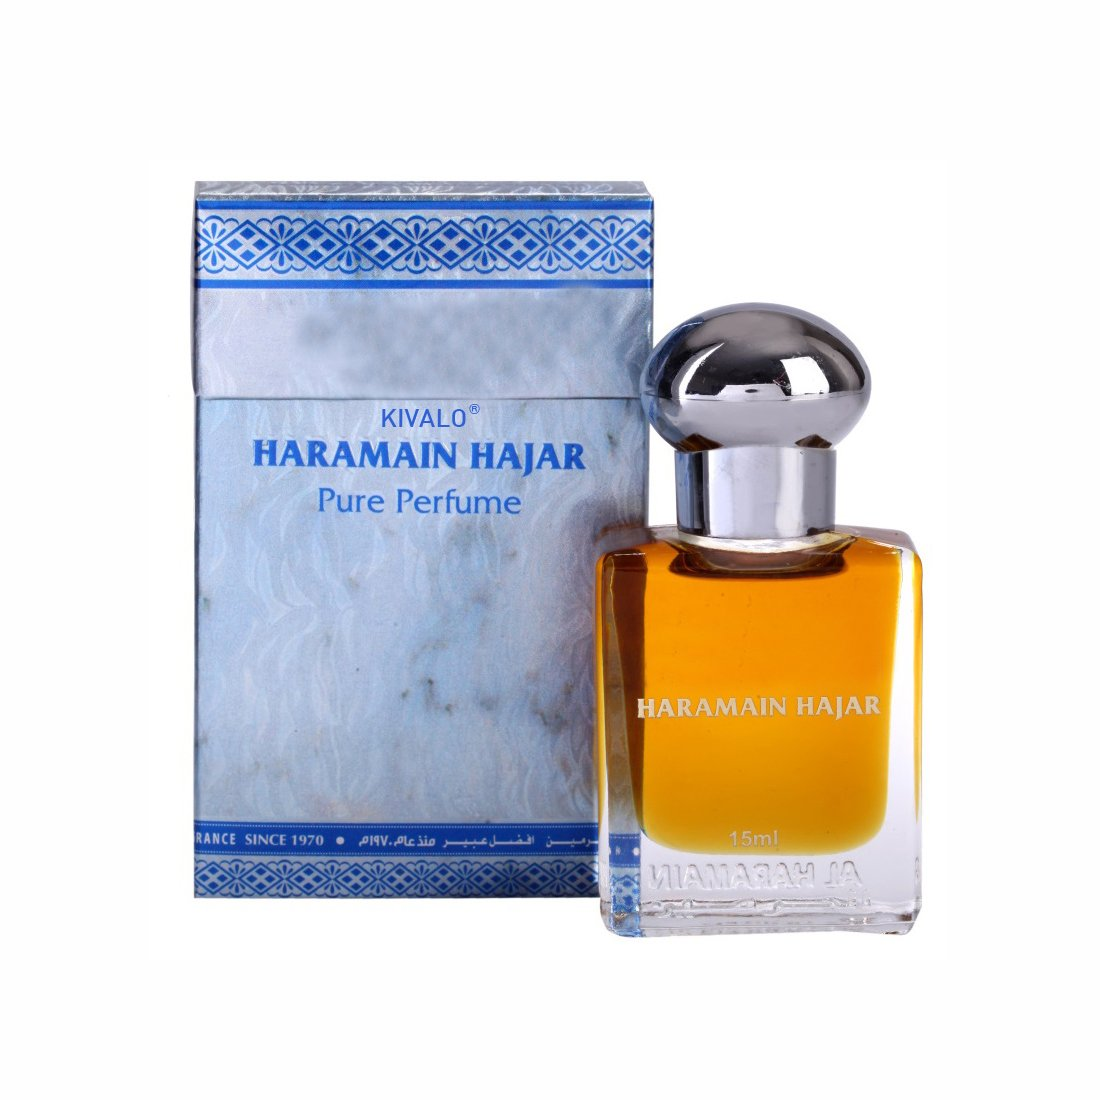 Al Haramain Hajar & Million Fragrance Pure Original Roll on Perfume Oil Pack of 2 (Attar) - 2 x 15 ml